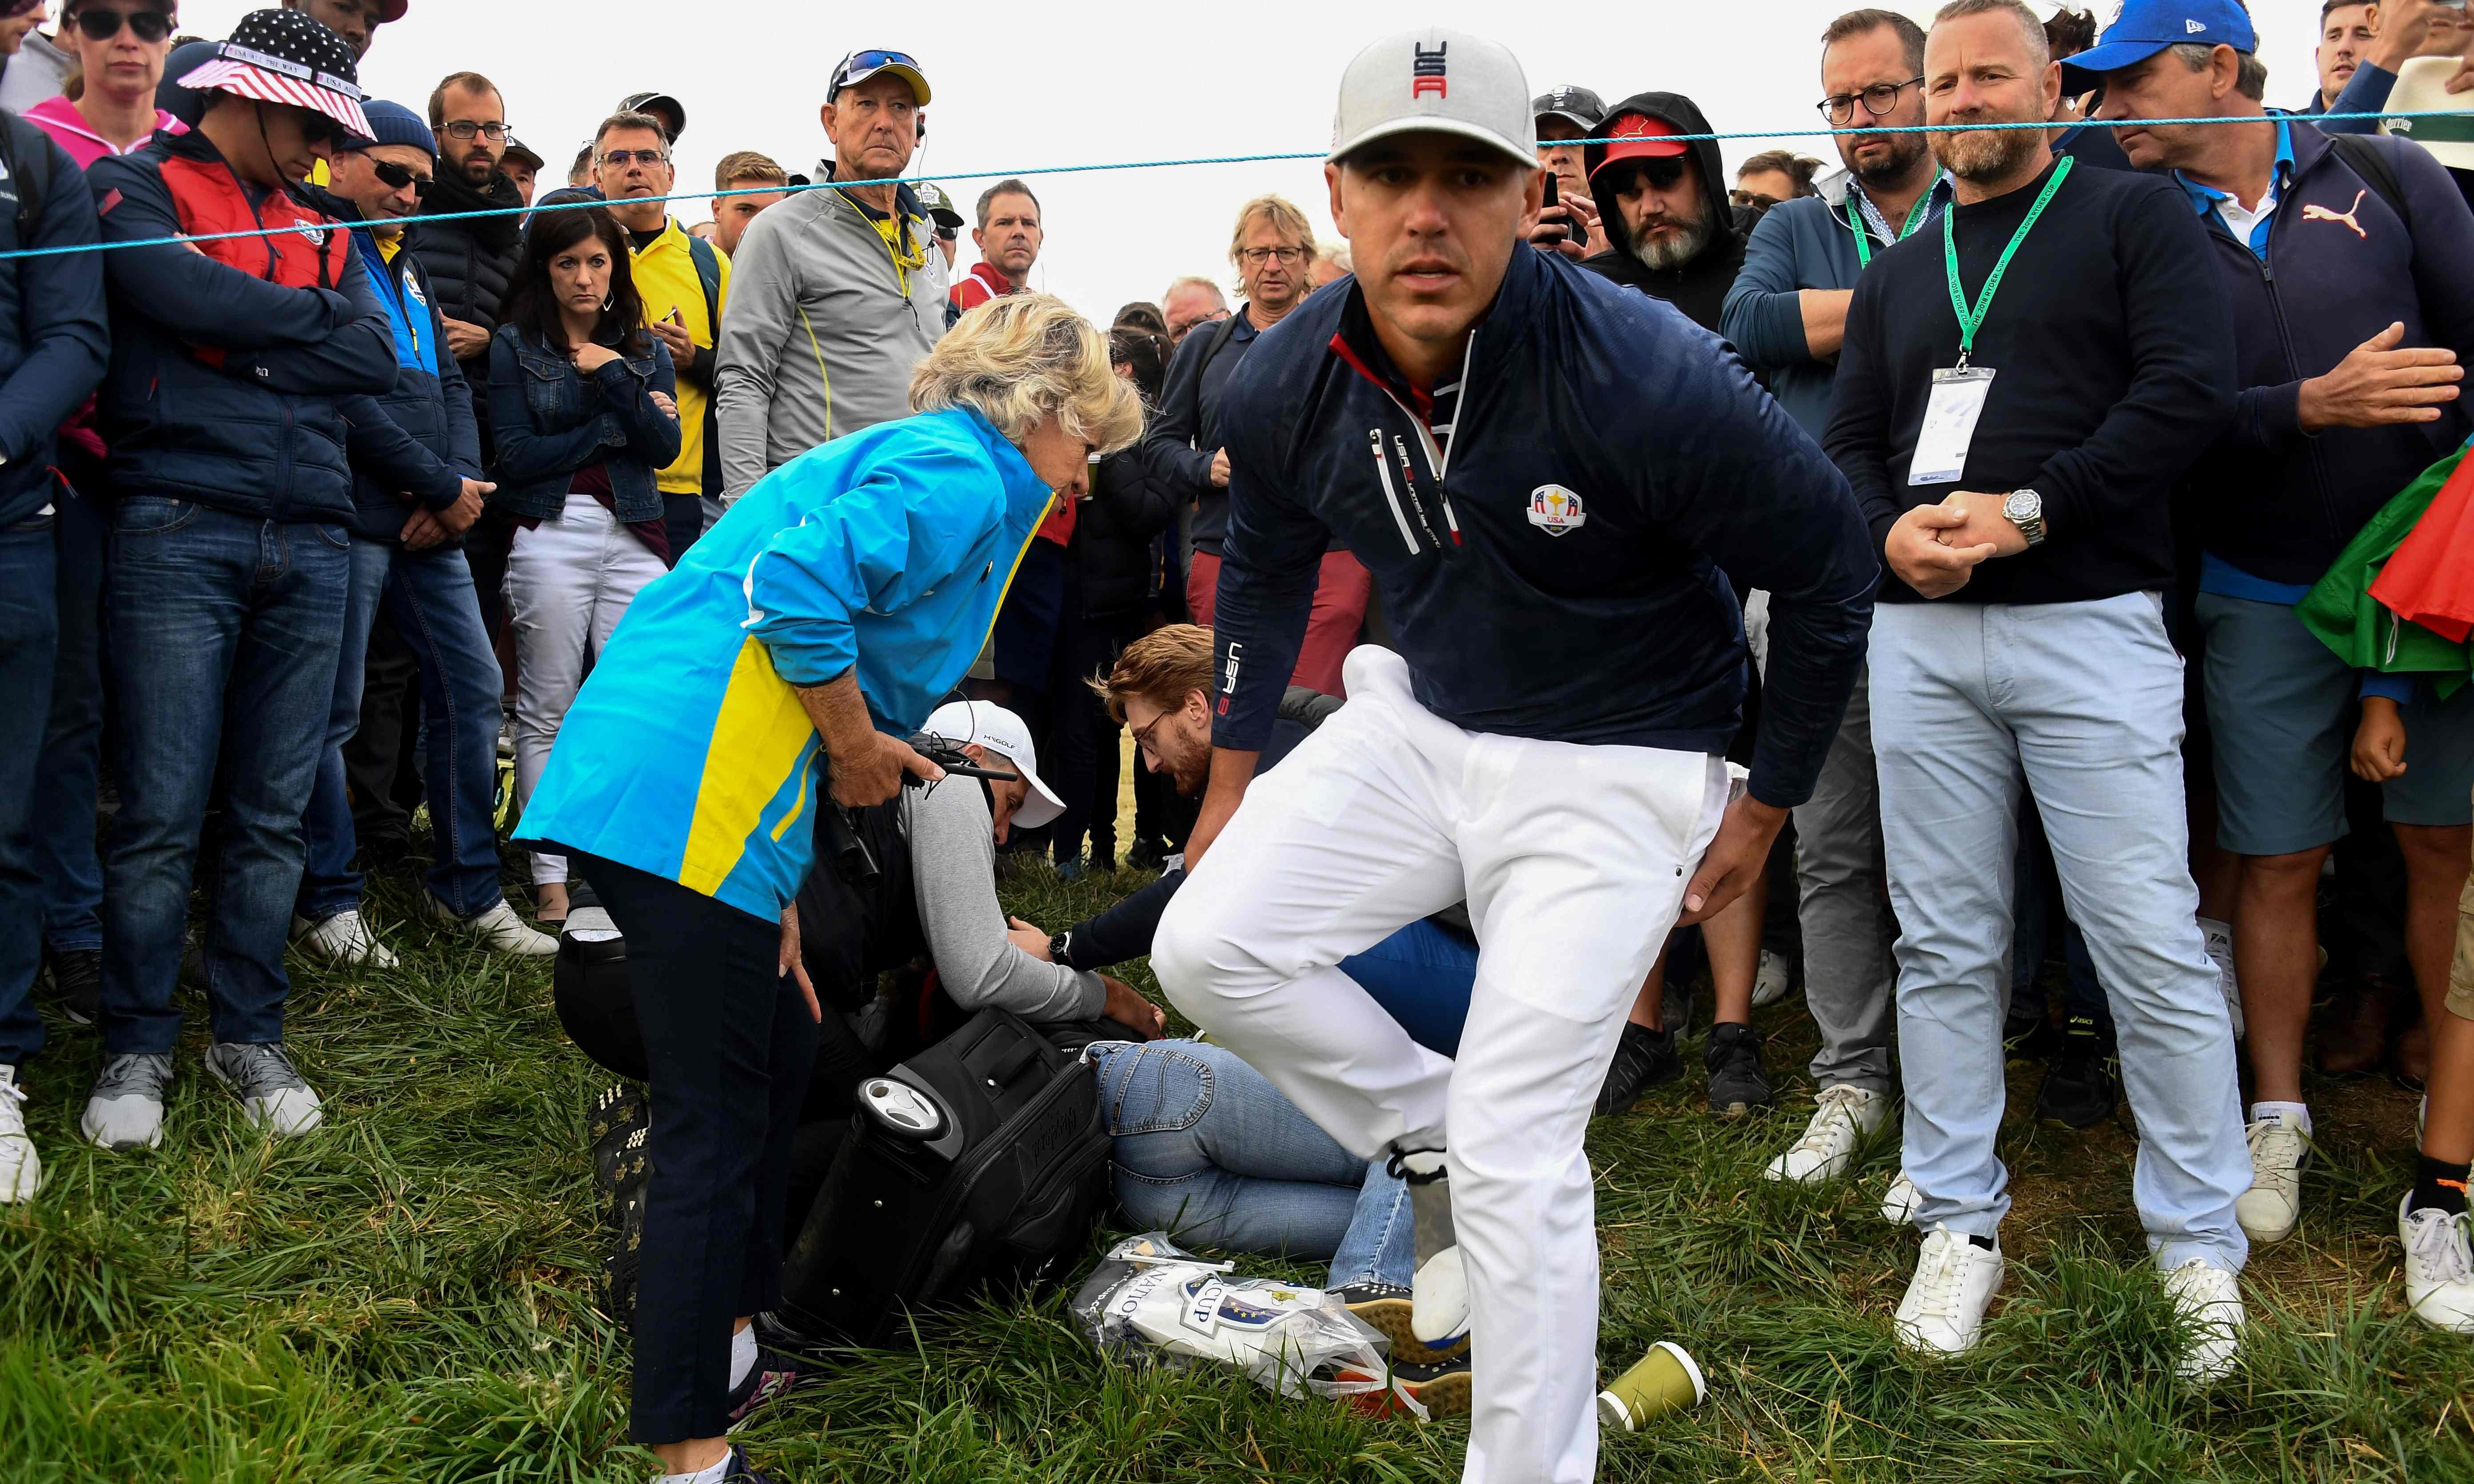 The inherent dangers of watching golf